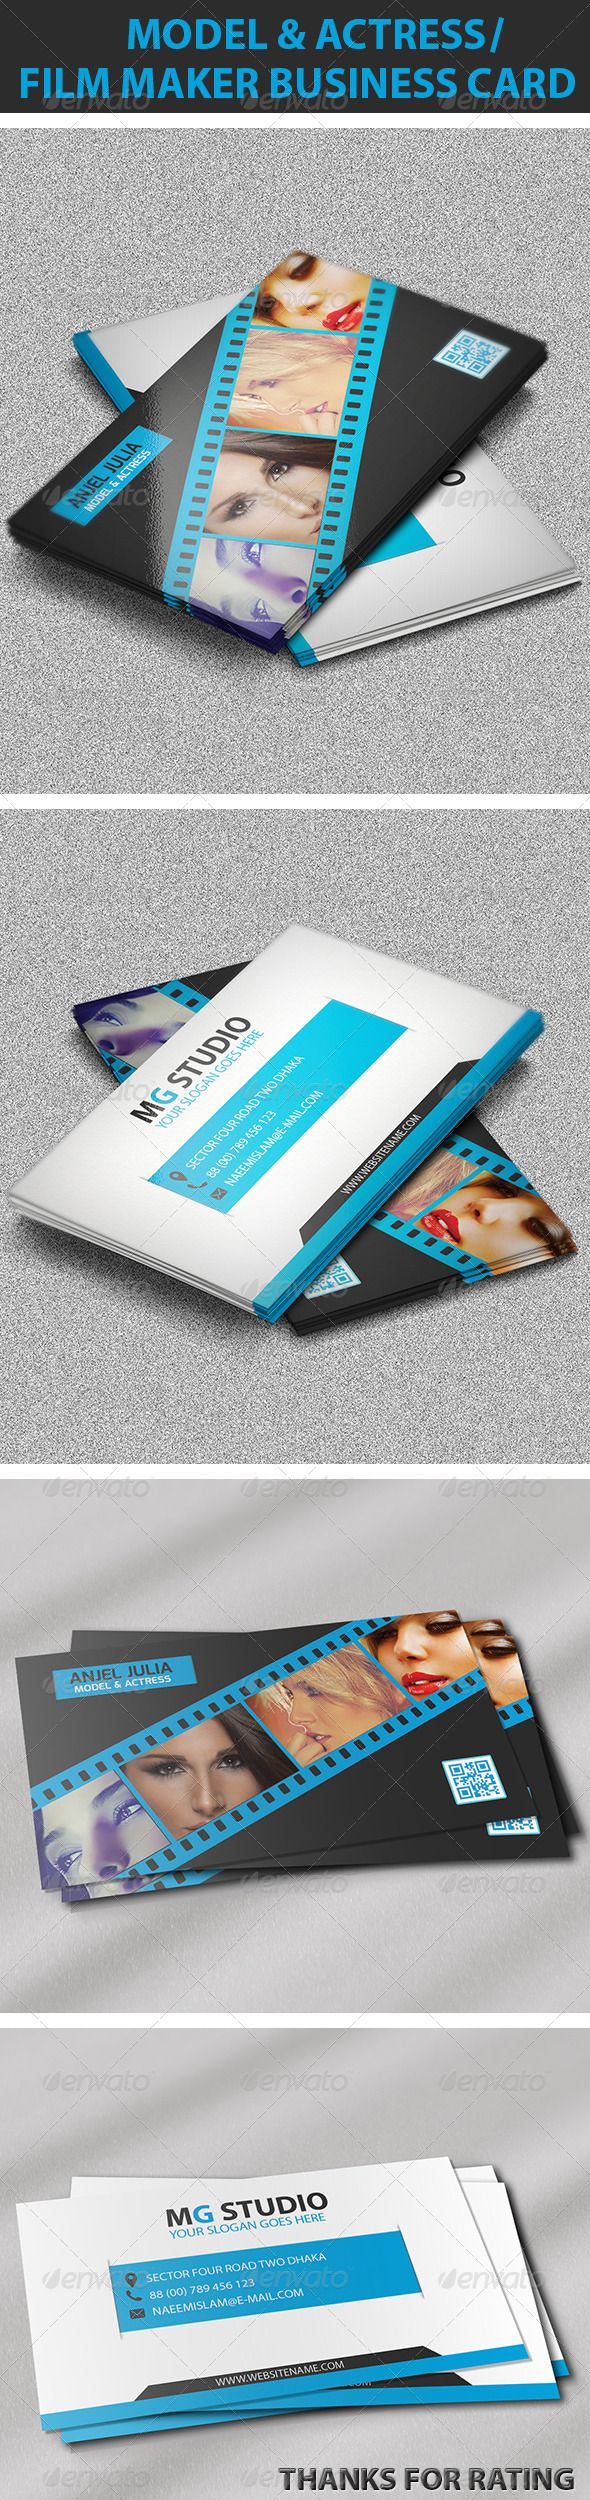 Colorful Actress Business Cards Component Business Card Ideas